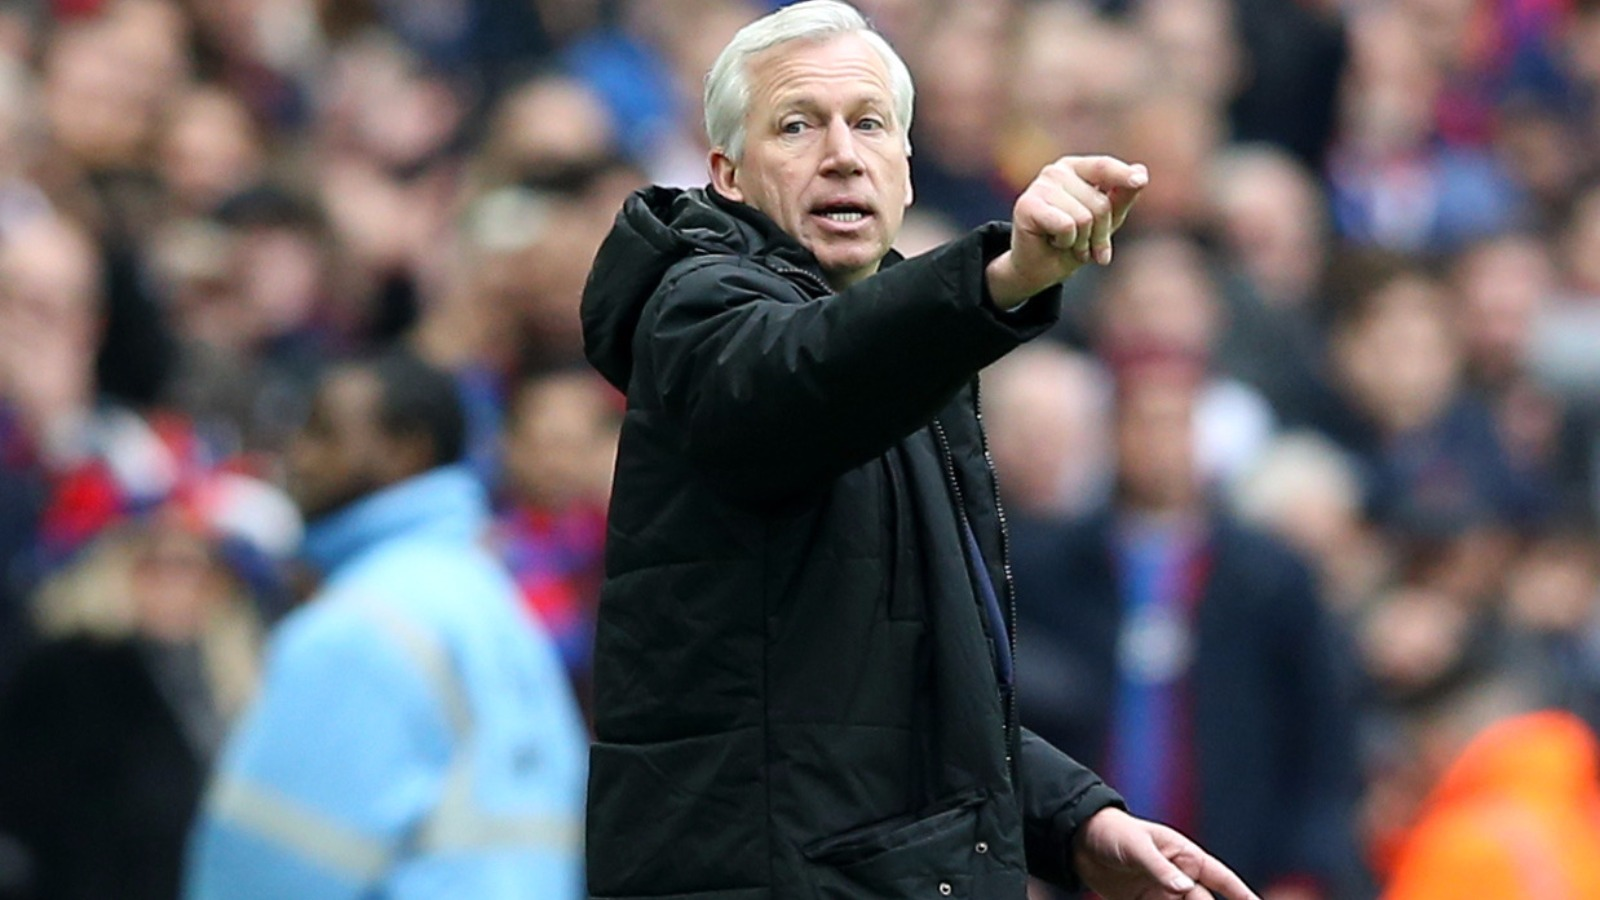 Premier League match report: Newcastle United 1-0 Crystal Palace - ITV ...